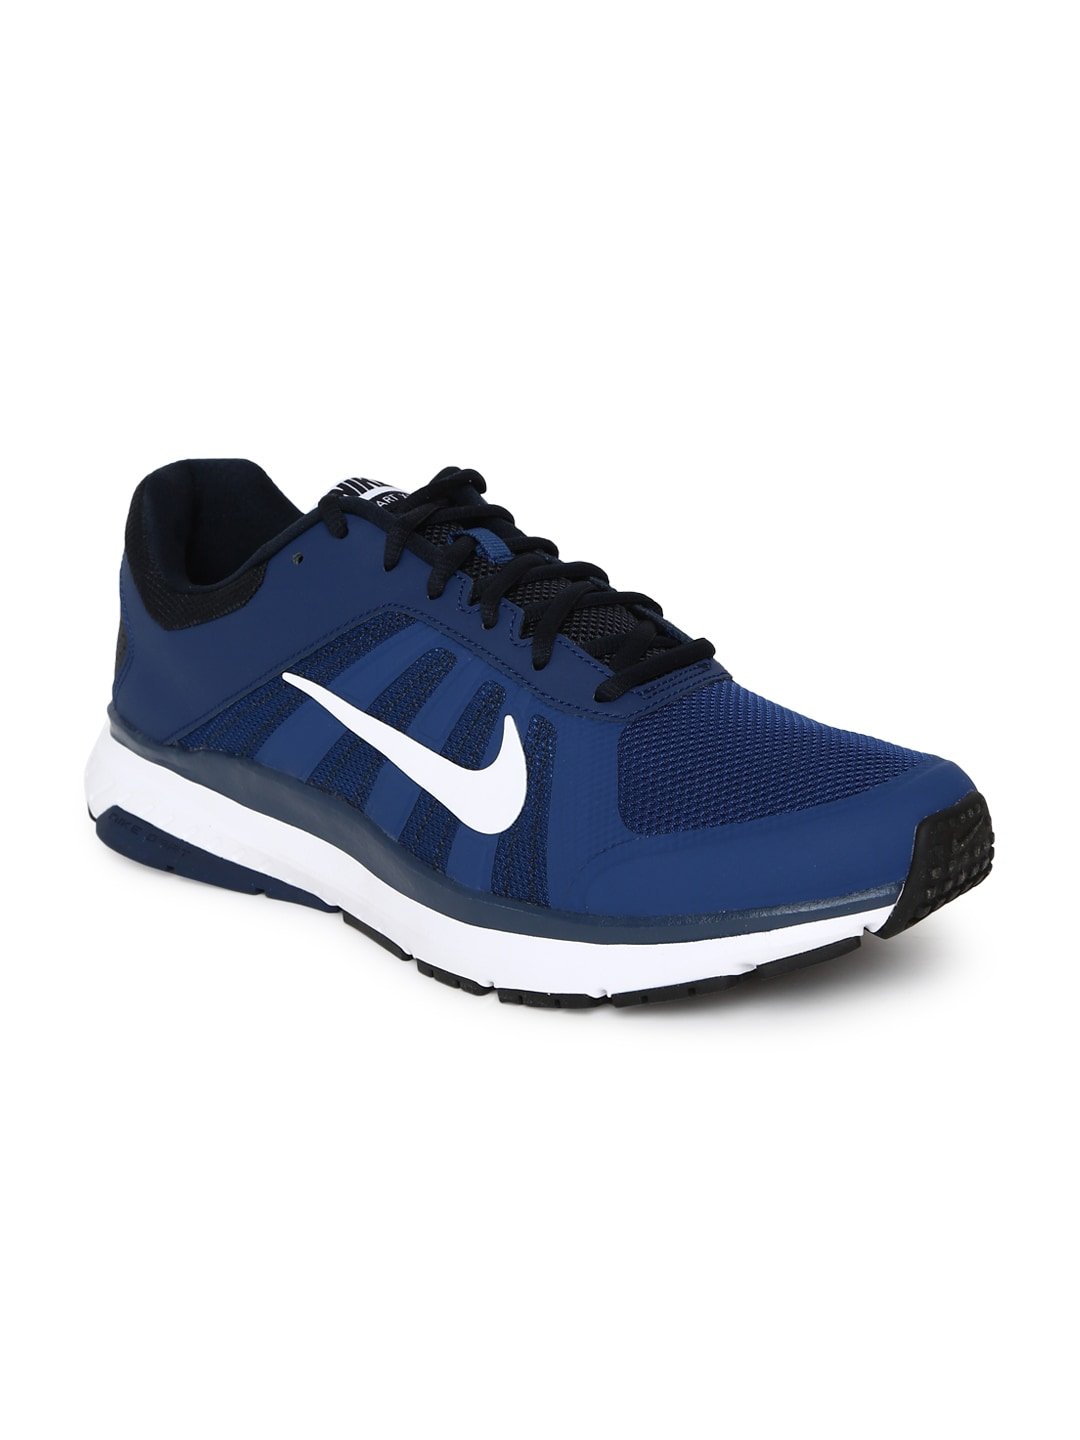 b8626e08c168 Nike Running Shoes - Buy Nike Running Shoes Online